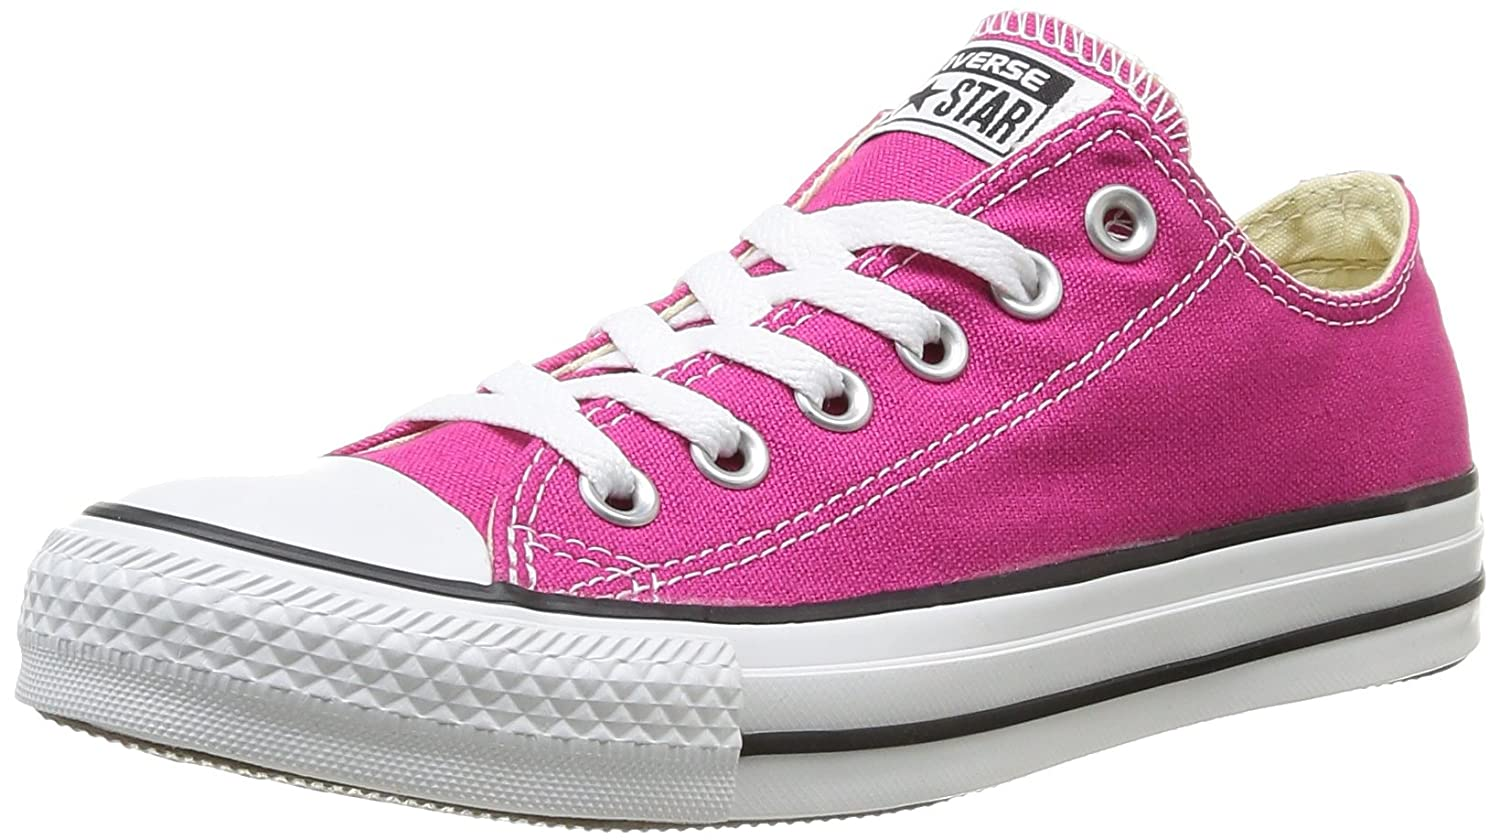 Converse Chuck B00IMWAQIE Taylor All Star Core, Taylor Baskets Mixte Adulte Baskets Rose 0756066 - gis9ma7le.space